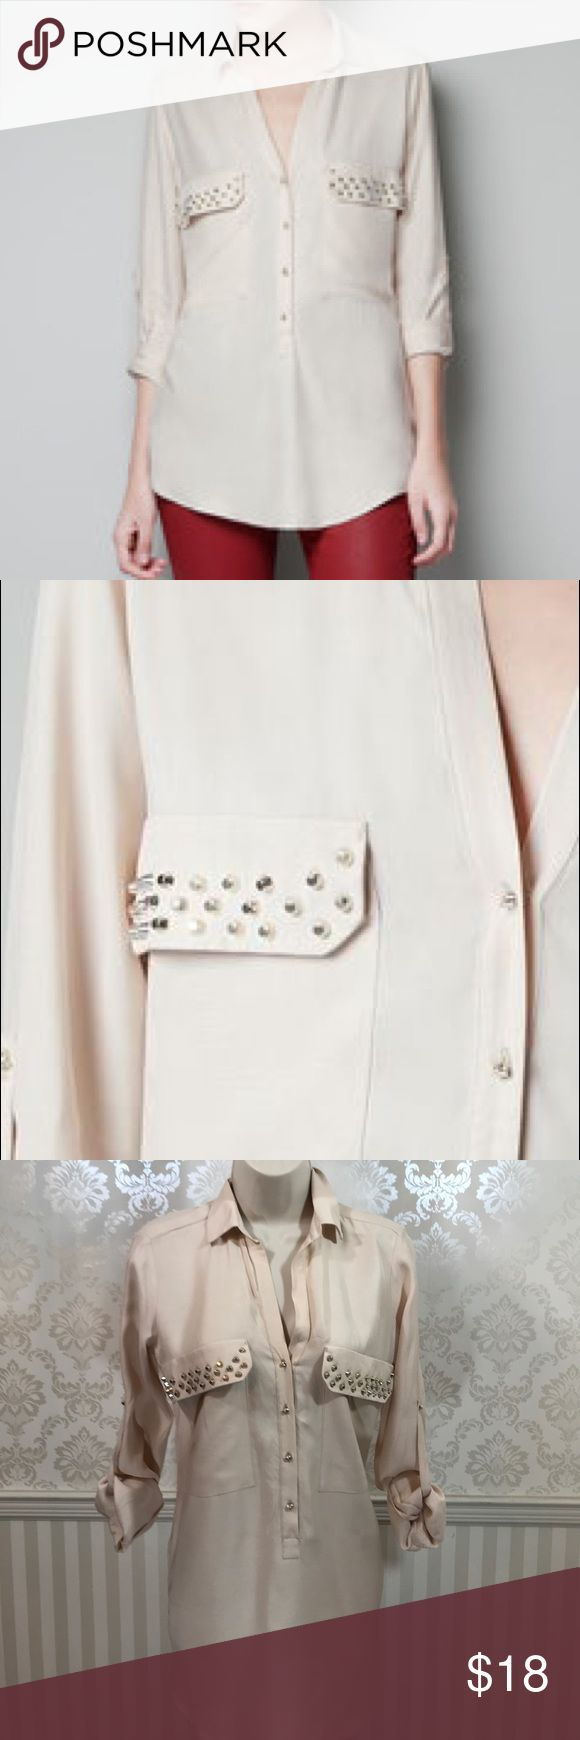 """Zara Blouse with Studded Pockets Zara cream-colored blouse in perfect condition. Silver studs on front pockets. Would look great with a leather jacket and jeans! Silver skull buttons. Button tab sleeves. Split hemline. Slouchy fit. Bust is about 38,"""" length is approximately 31"""" at longest point. 100% viscose. Size XS. Zara Tops Button Down Shirts"""